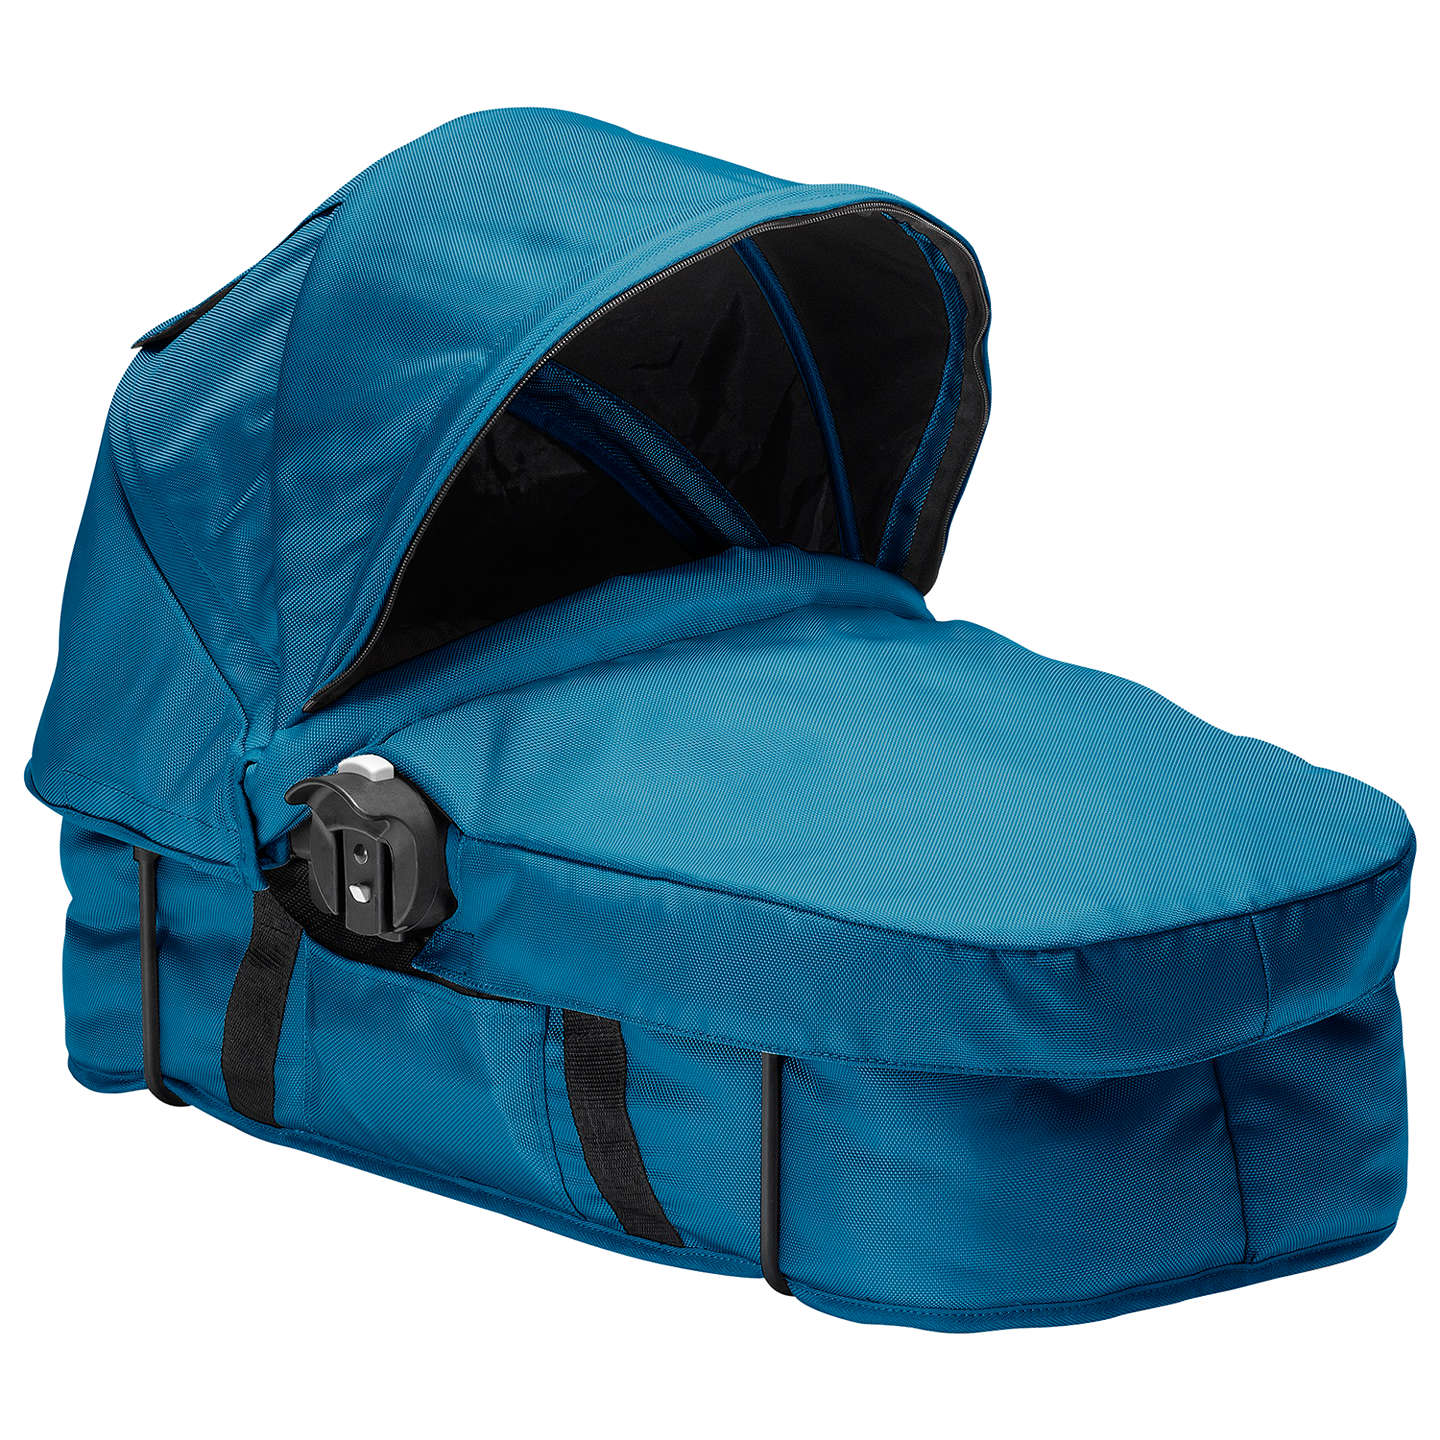 BuyBaby Jogger City Select Carrycot, Teal Online at johnlewis.com